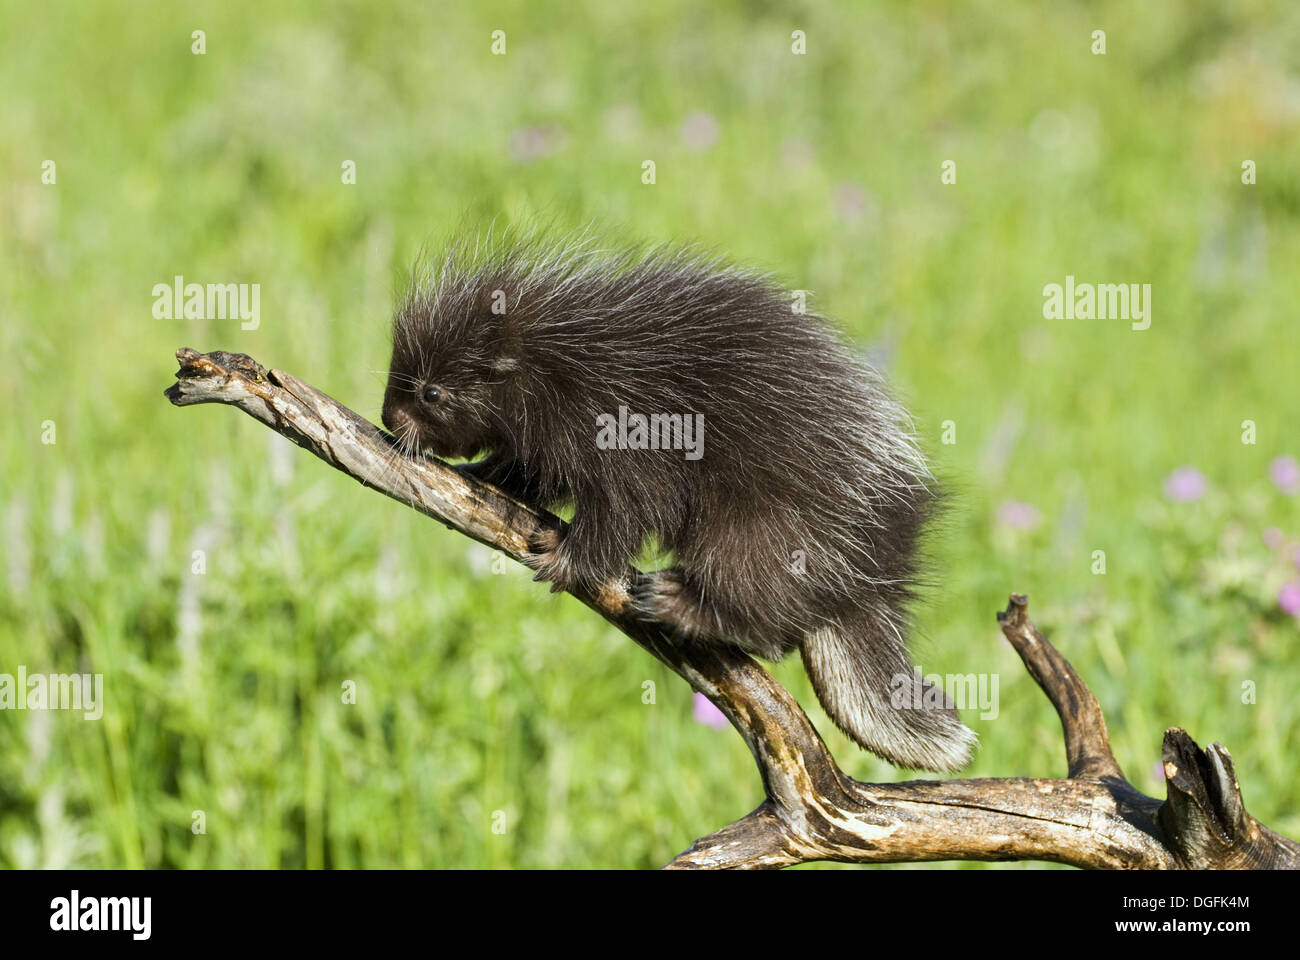 Baby porcupine on branch (Erethizon dorsatum) Stock Photo